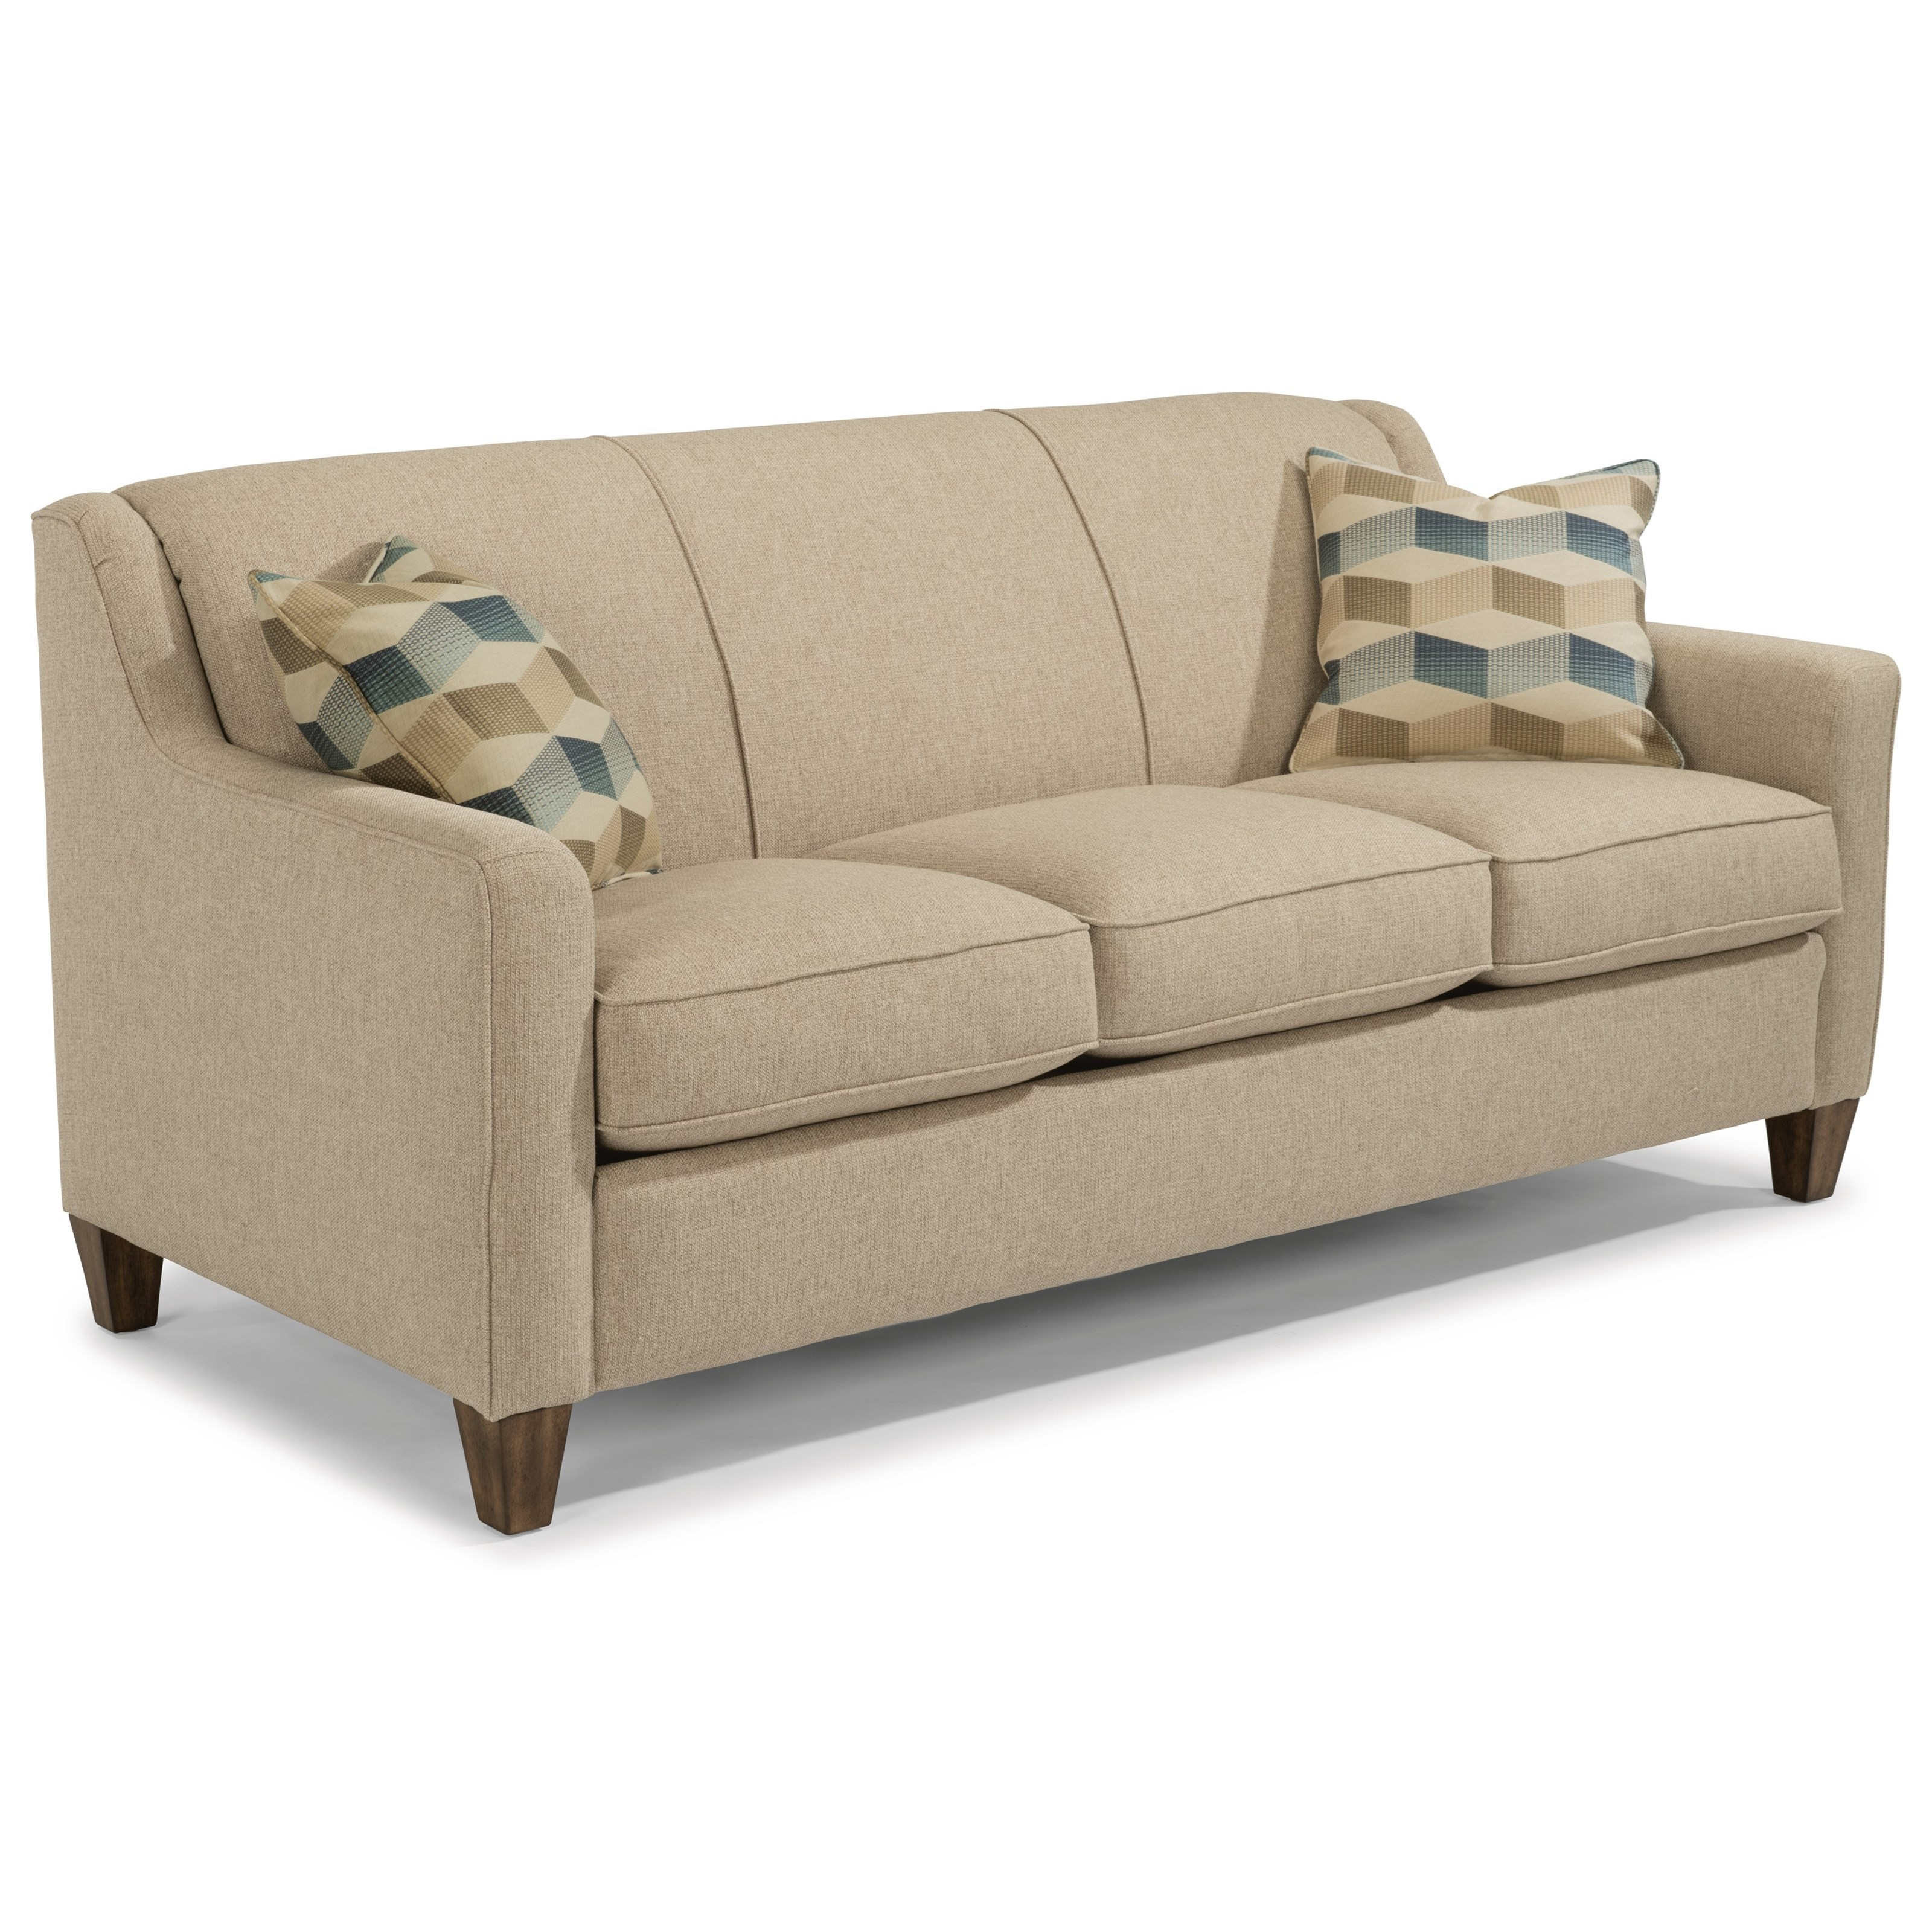 Queen Sleeper Sofa Sectional With Pull Out Bed Sofas And Couches